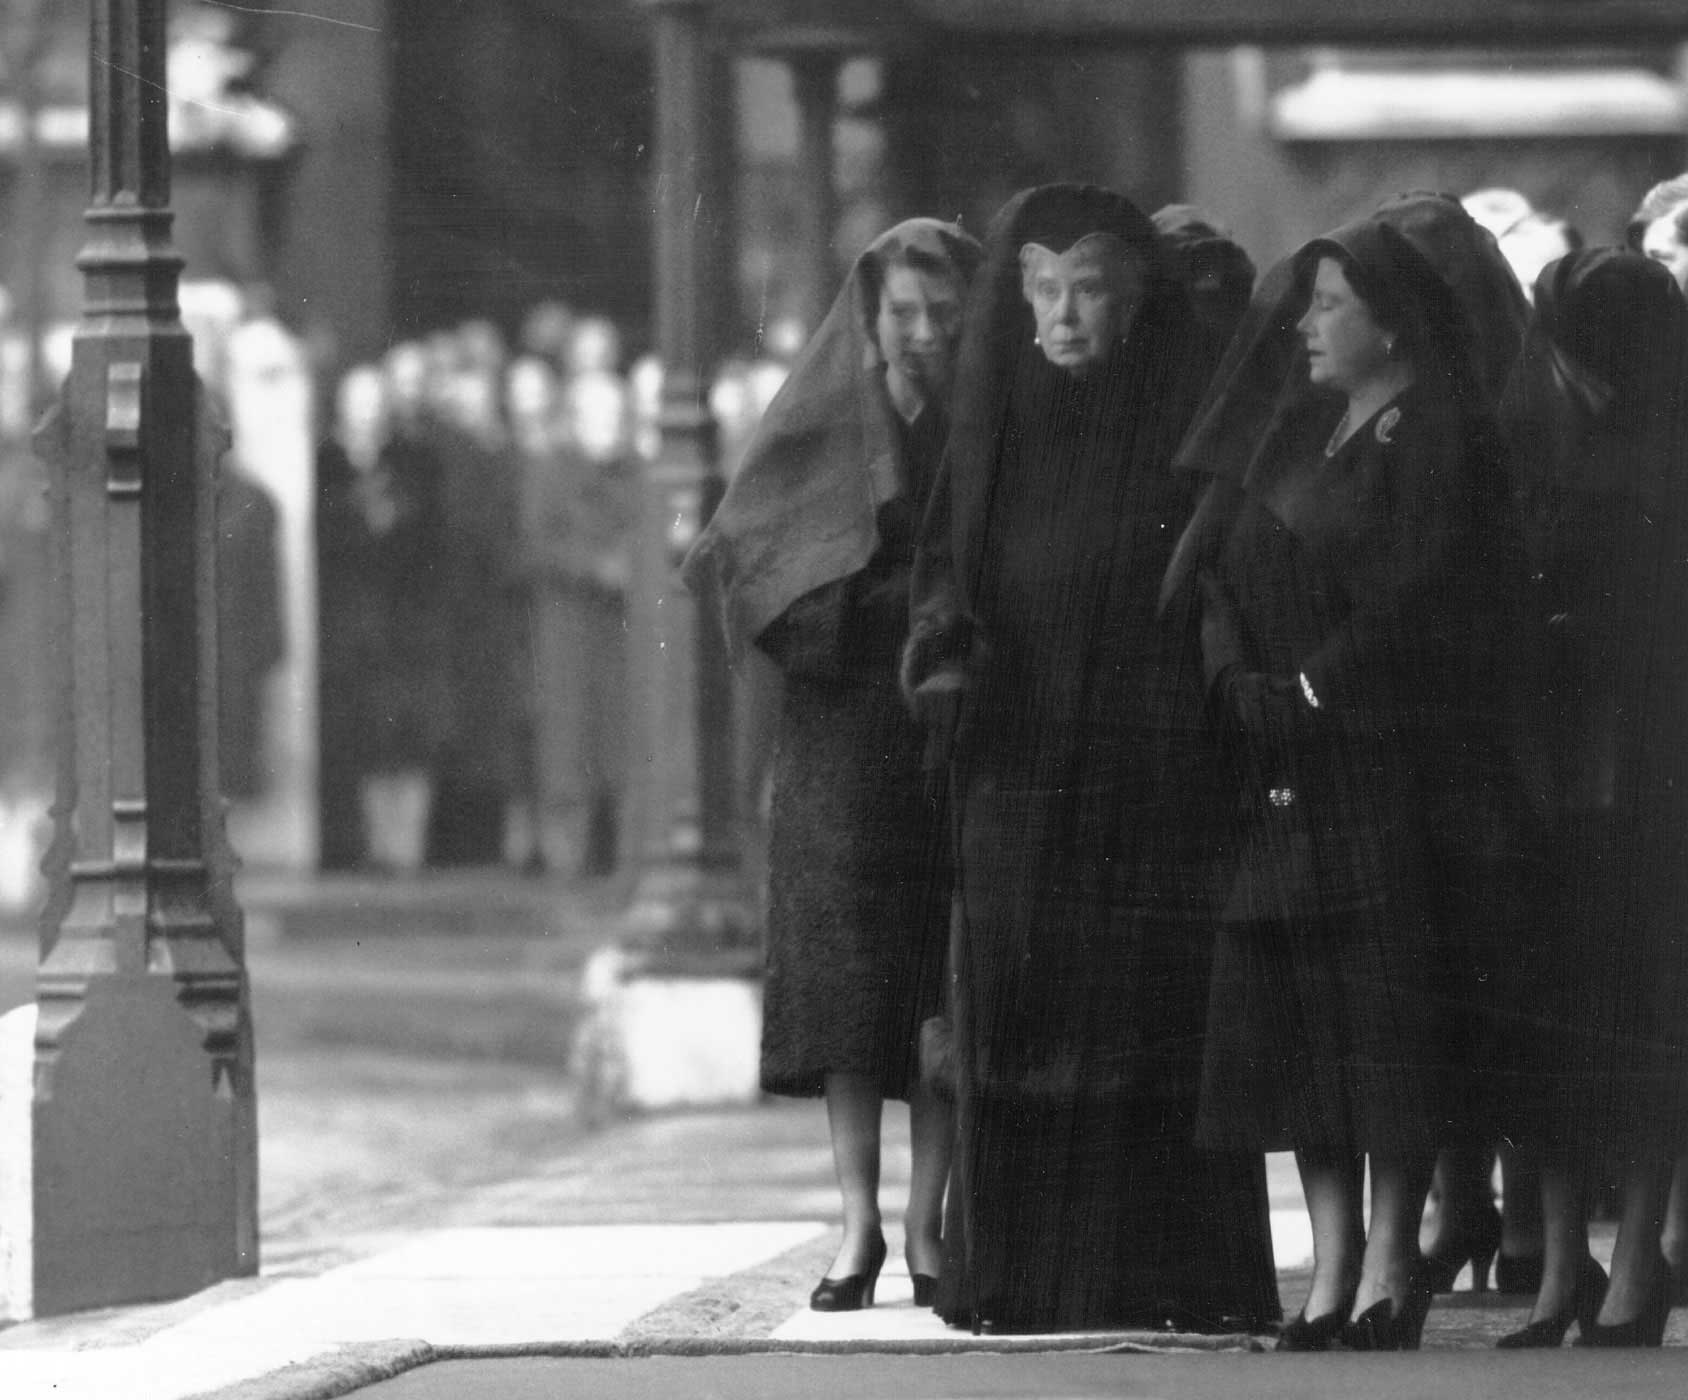 Elizabeth, her grandmother Queen Mary and her mother Queen Elizabeth stand in mourning at the funeral of King George VI. The following year, just 10 weeks before Elizabeth's official coronation, Queen Mary would pass away from lung cancer at the age of 85. Before her death, she insisted that the coronation not be postponed.